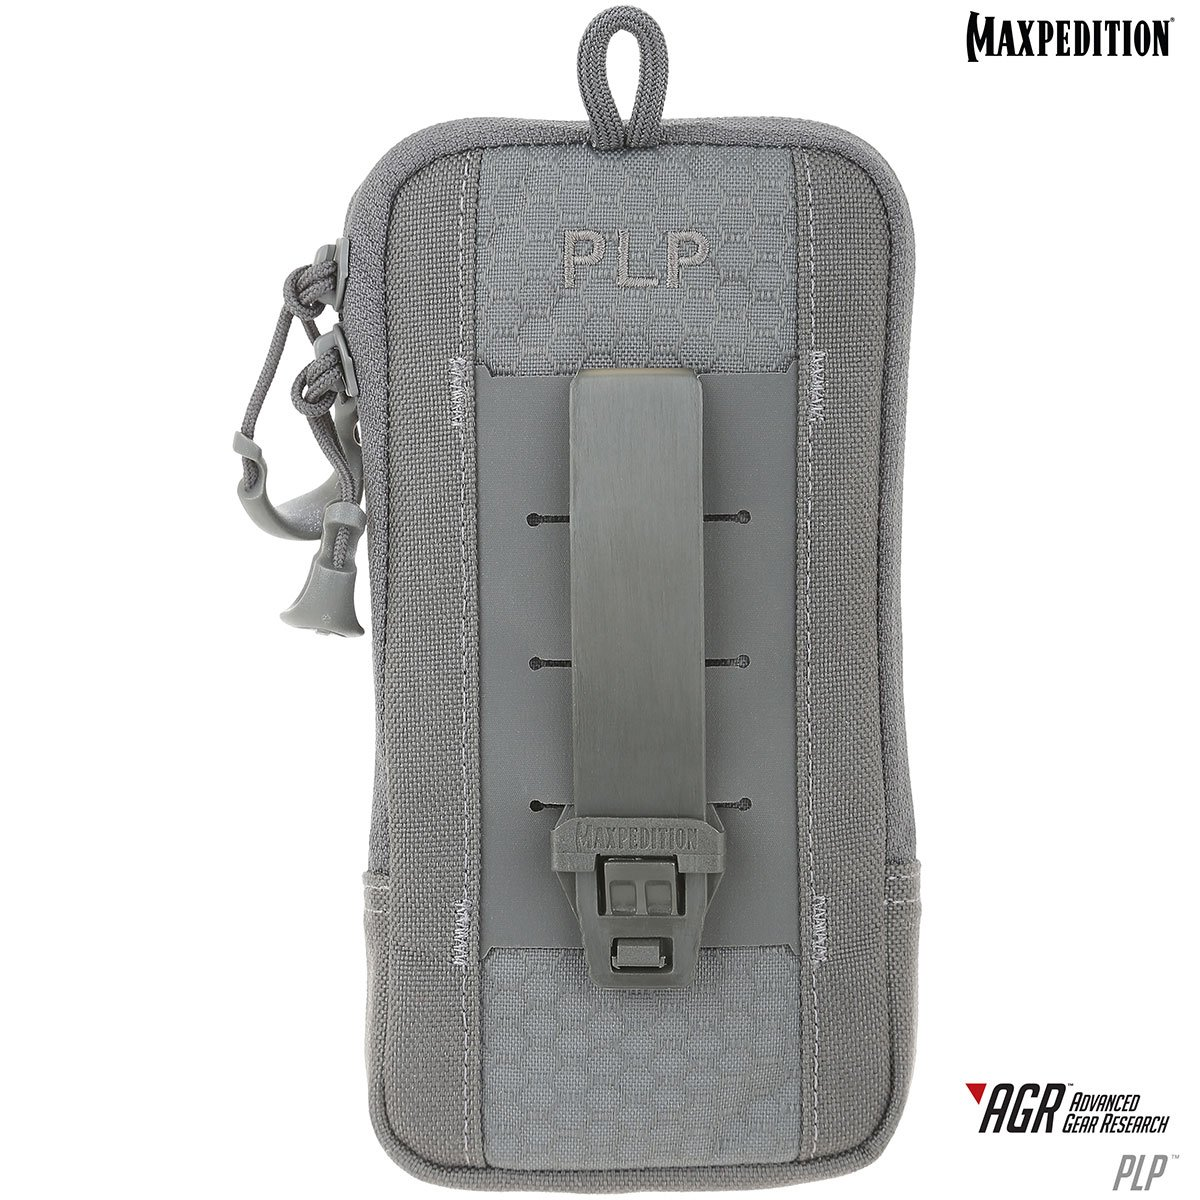 Maxpedition PLP iPhone 6 Plus Pouch – Black